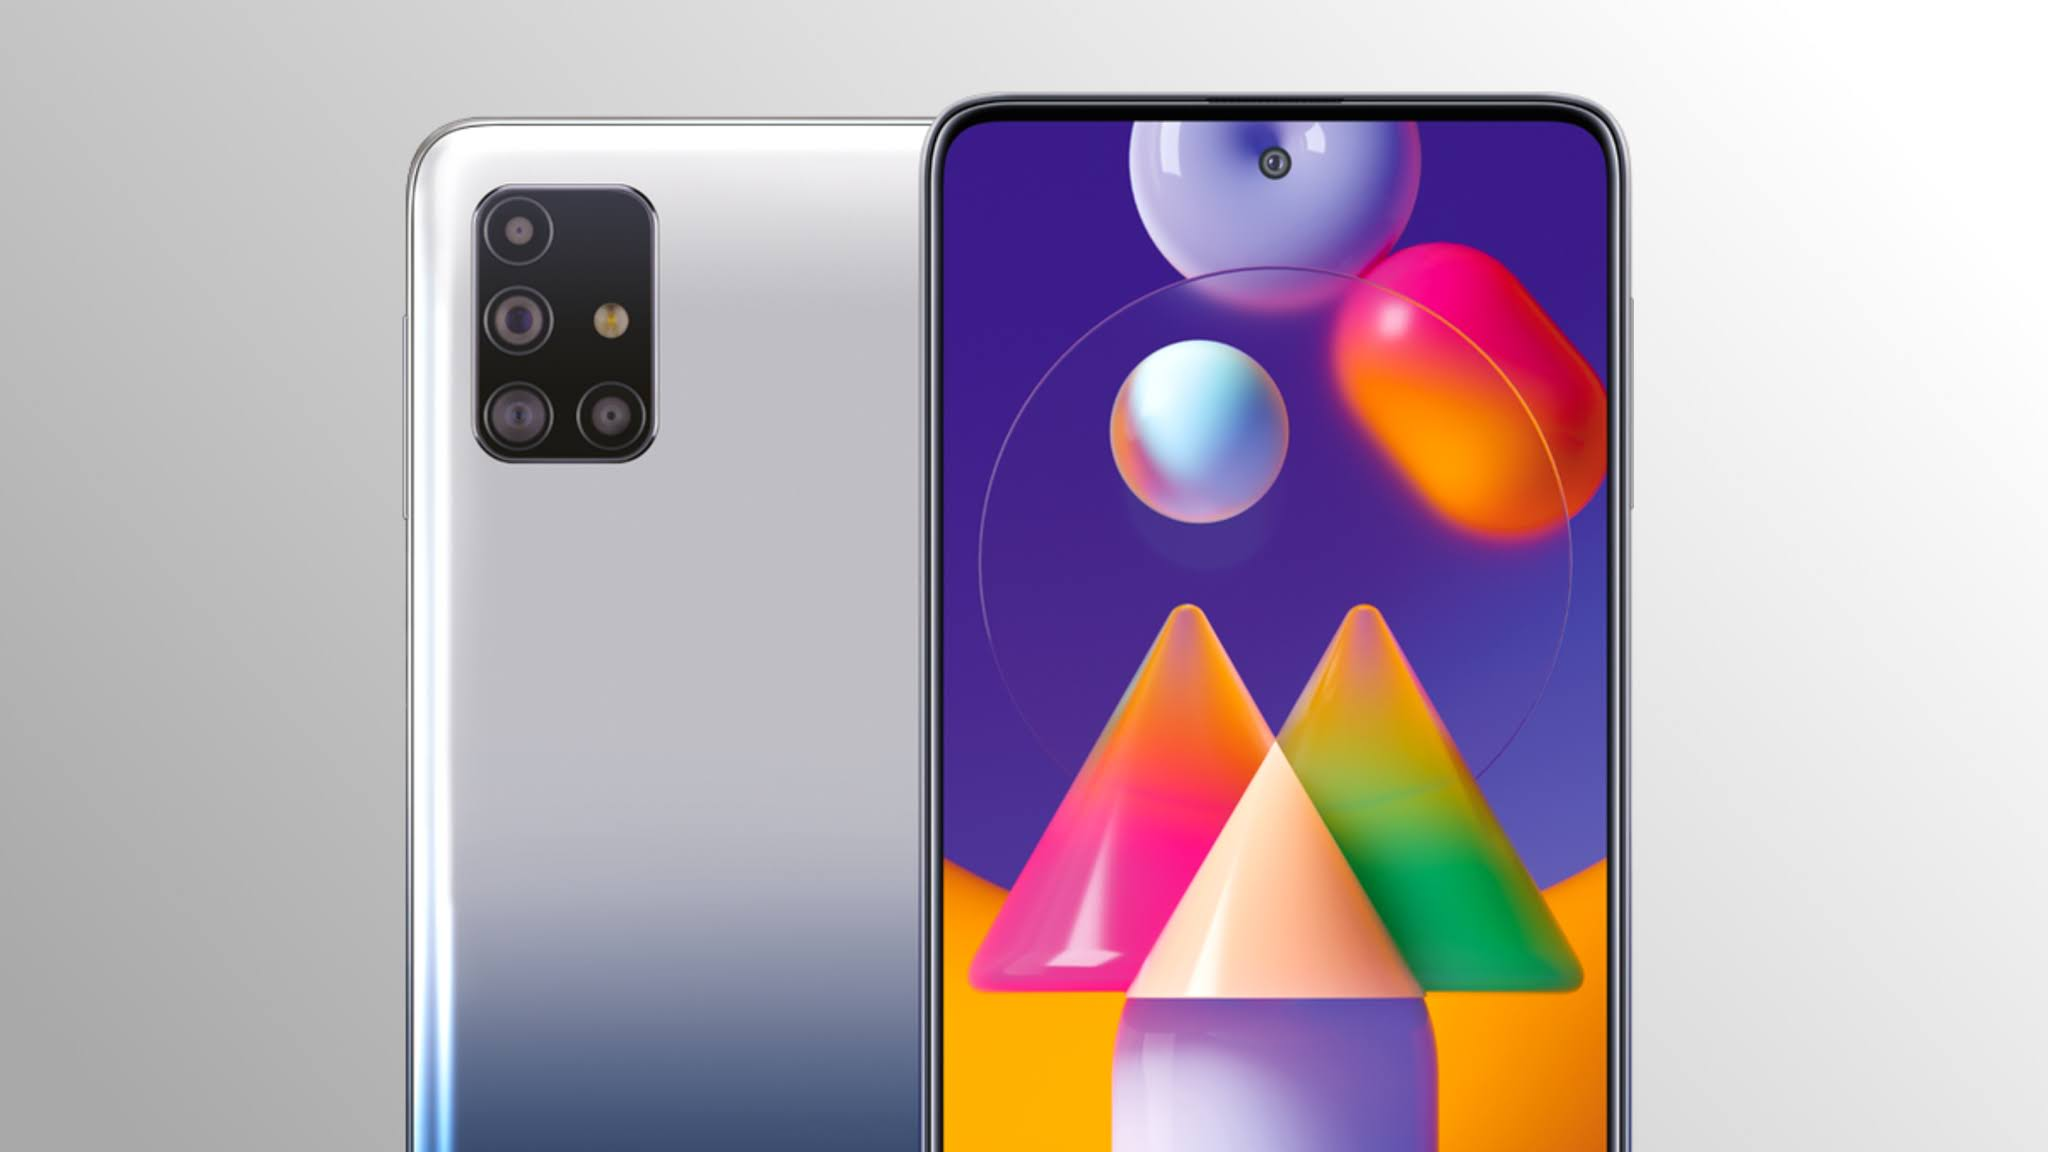 Samsung Galaxy M31s with 6,000mAH Battery - Full Specifications, Price